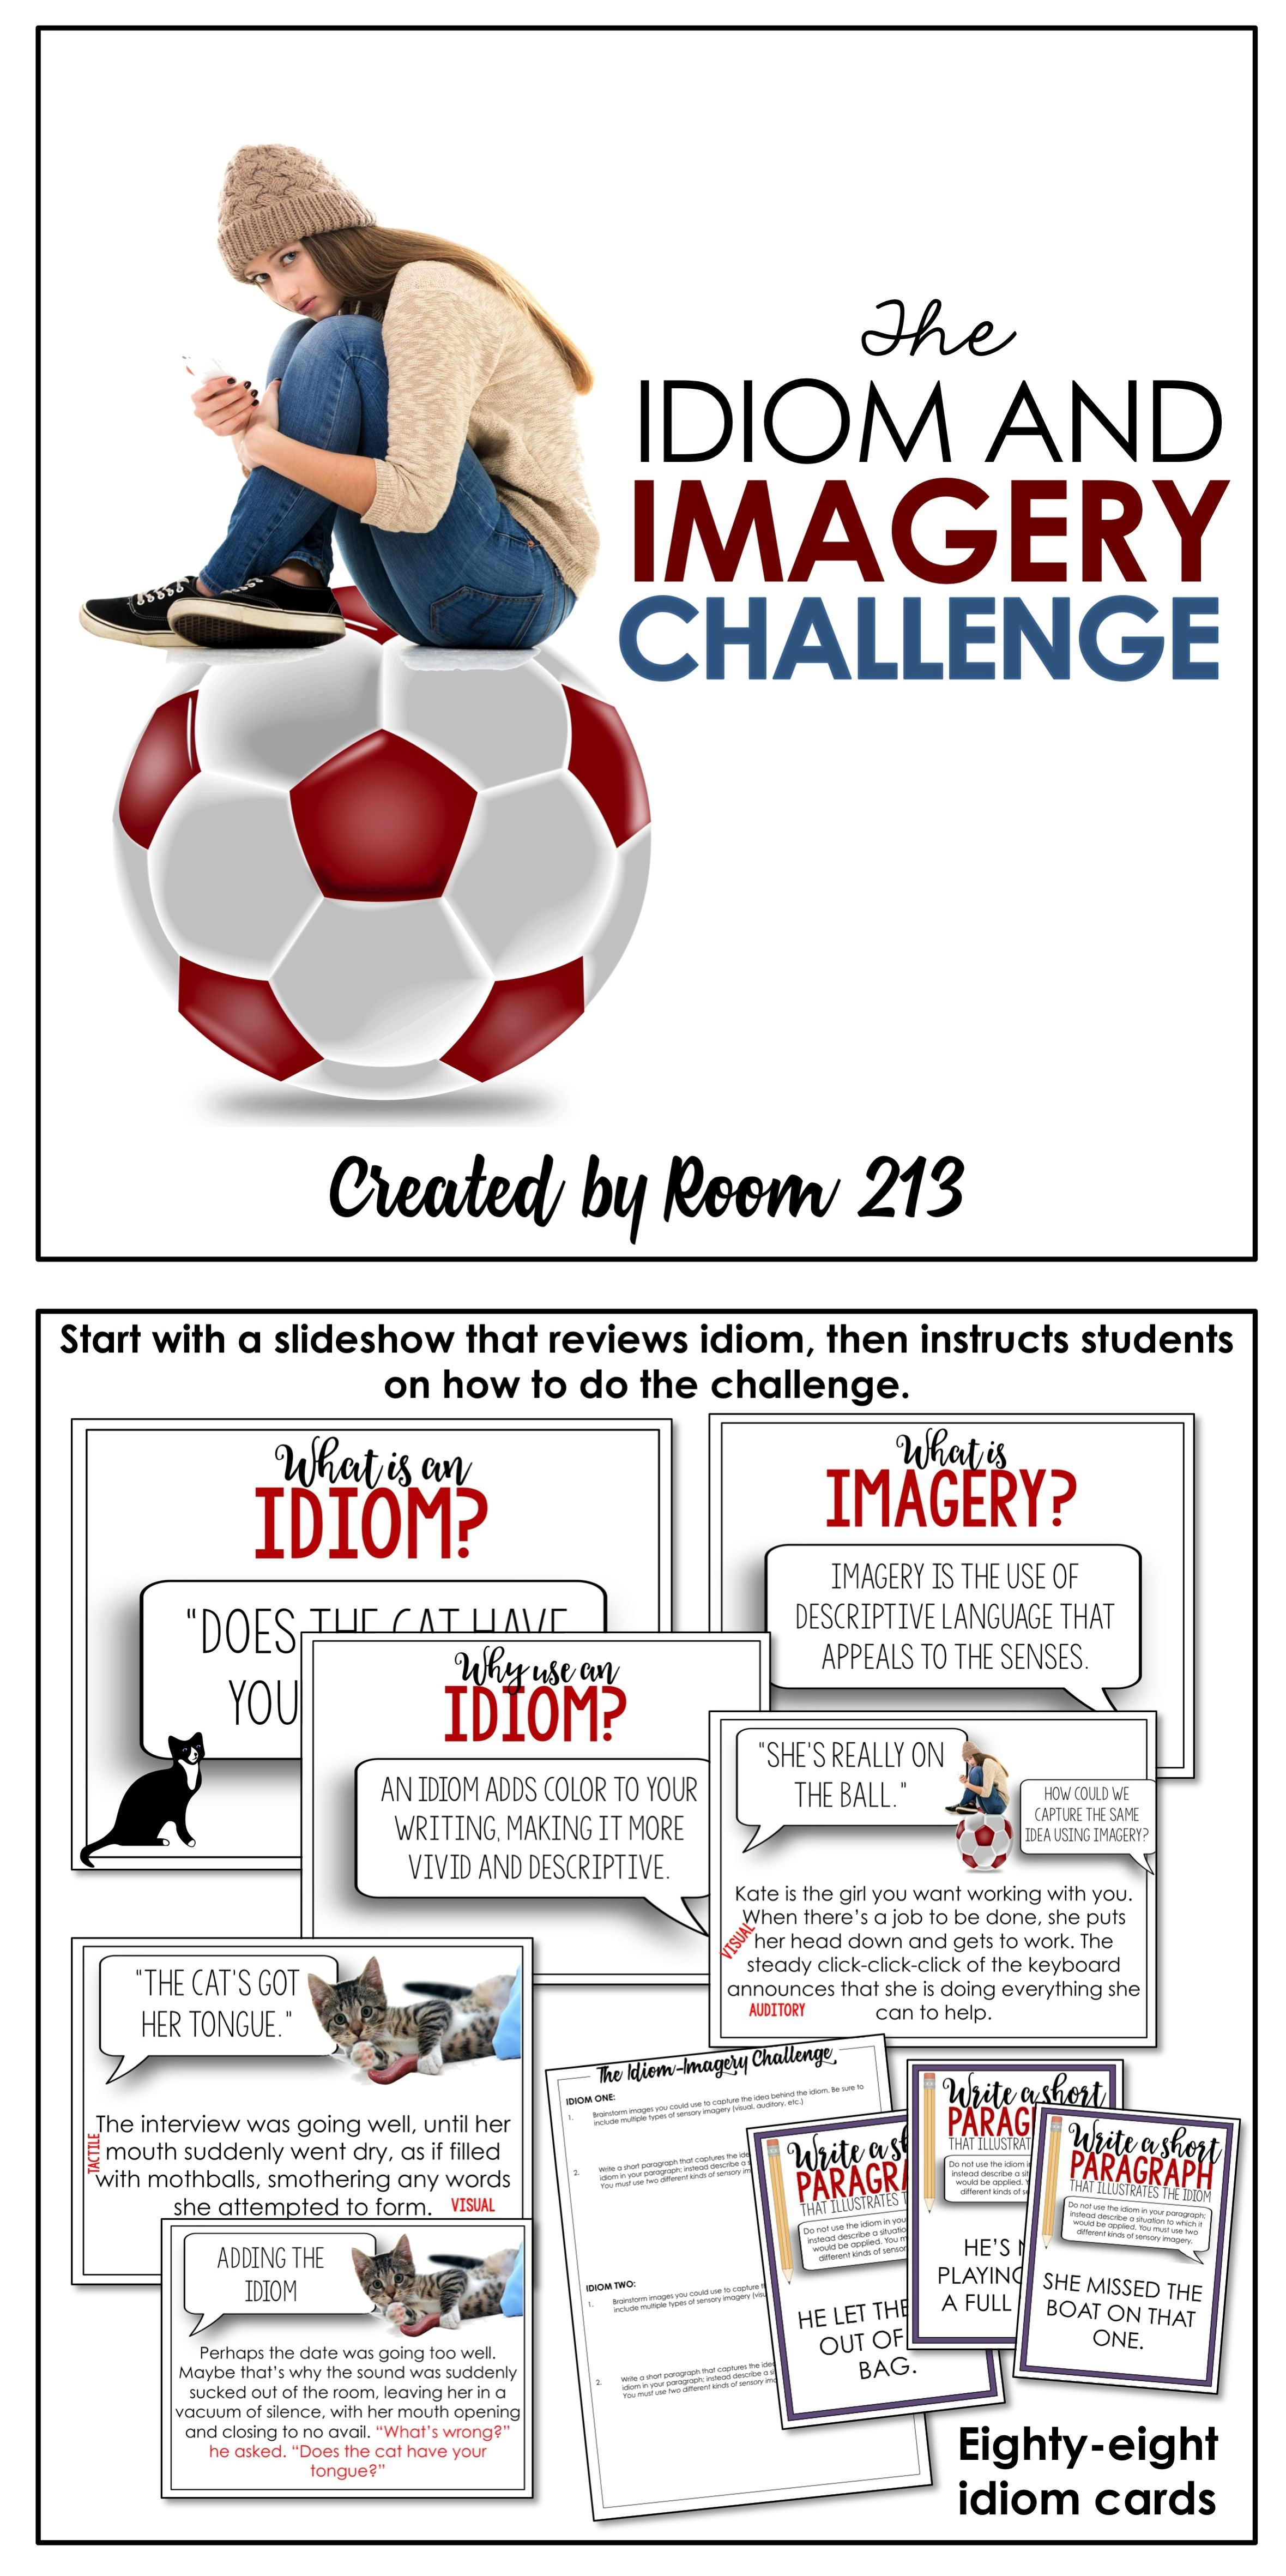 The Idiom And Imagery Challenge